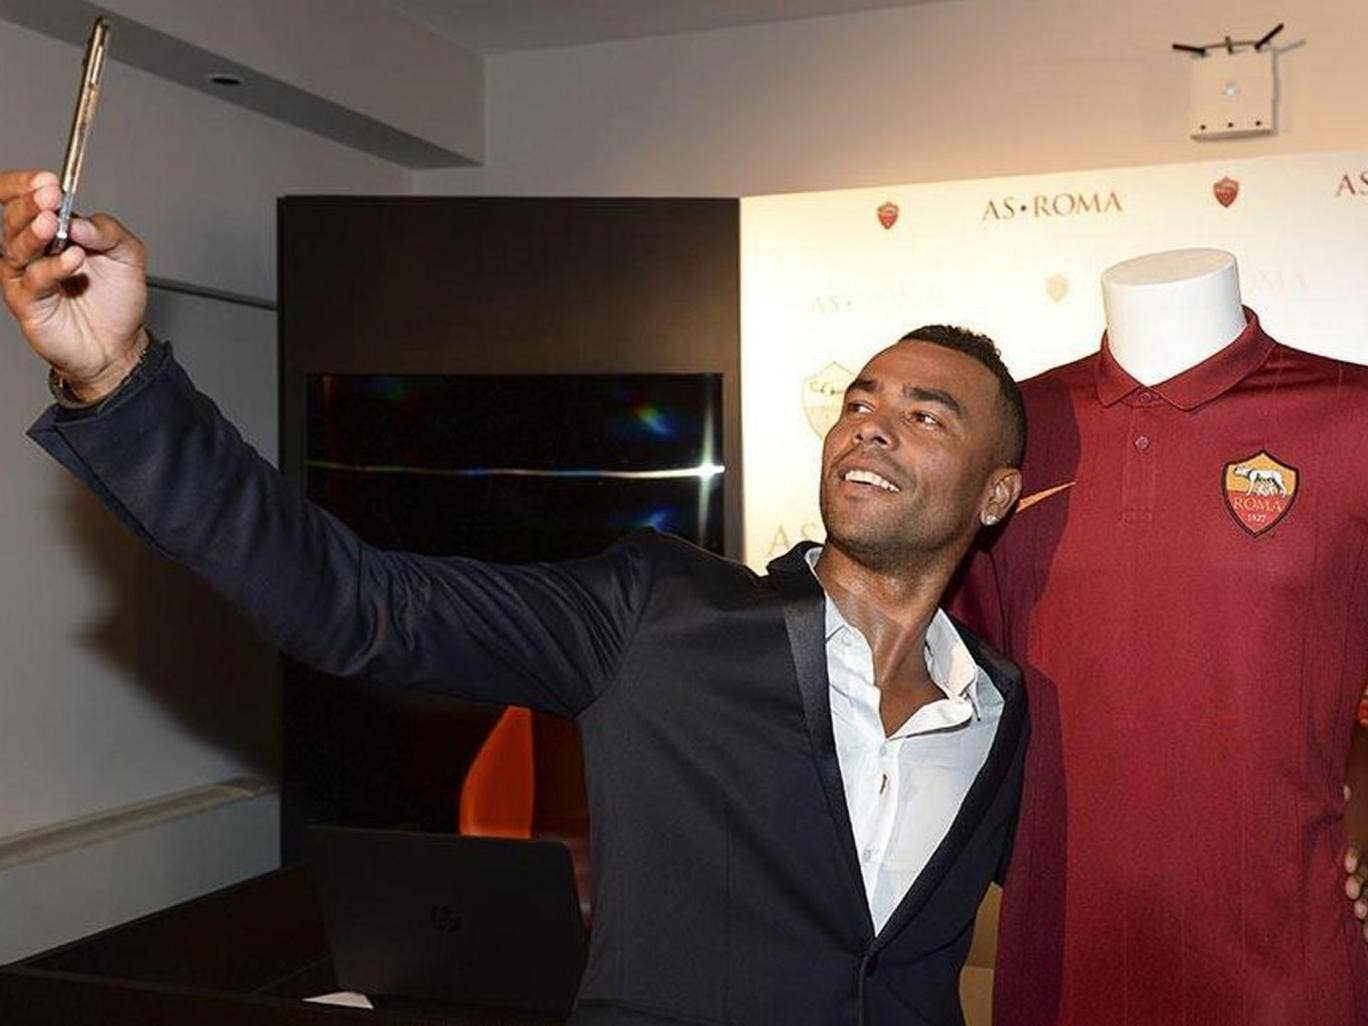 Ashley Cole has joined Roma after being released from his Chelsea contract